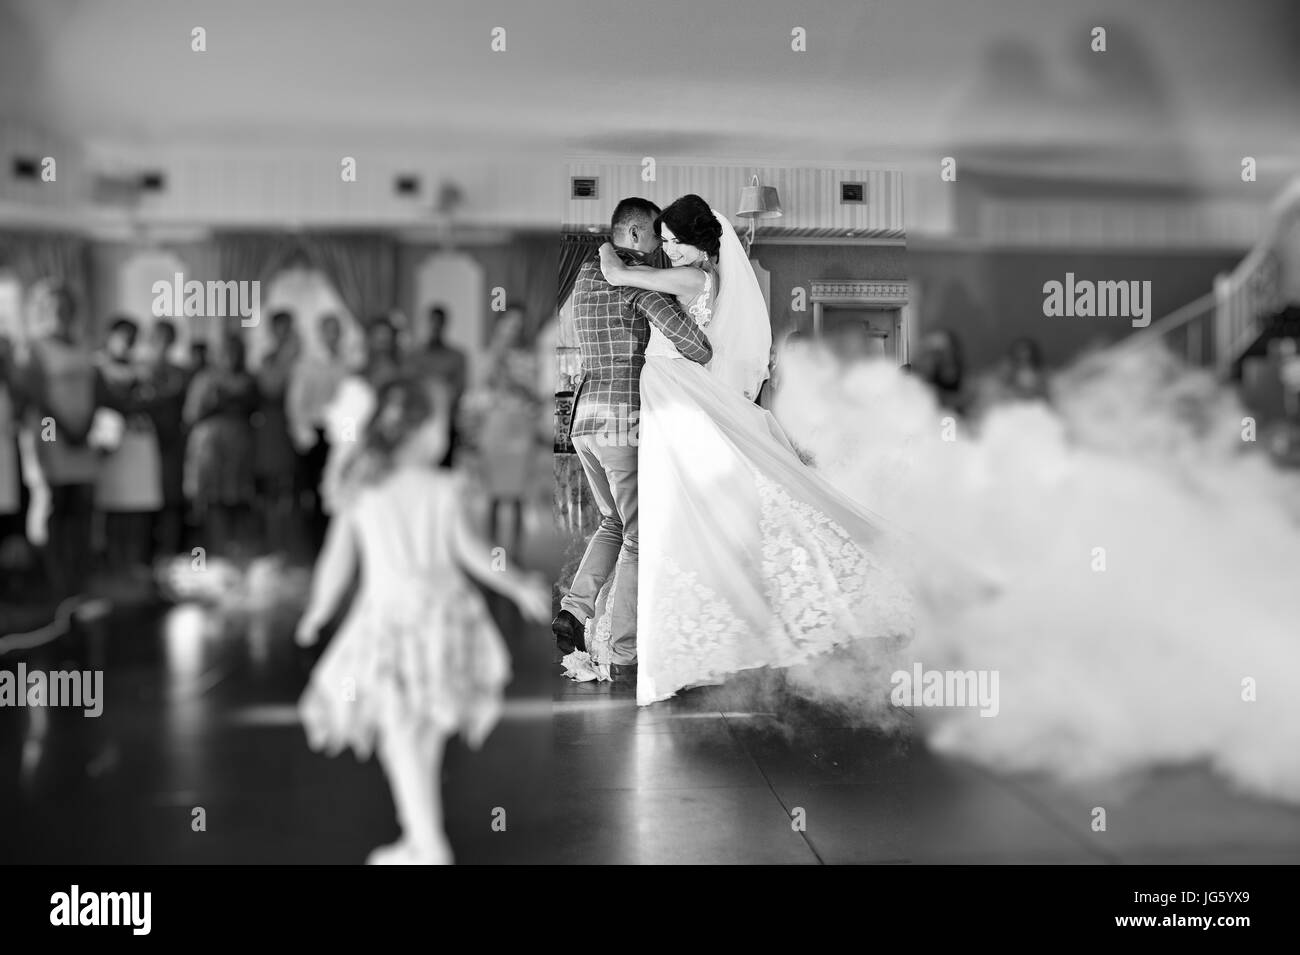 Beautiful Wedding Couple Dancing Their First Dance In A Restaurant With People The Background Black And White Photo